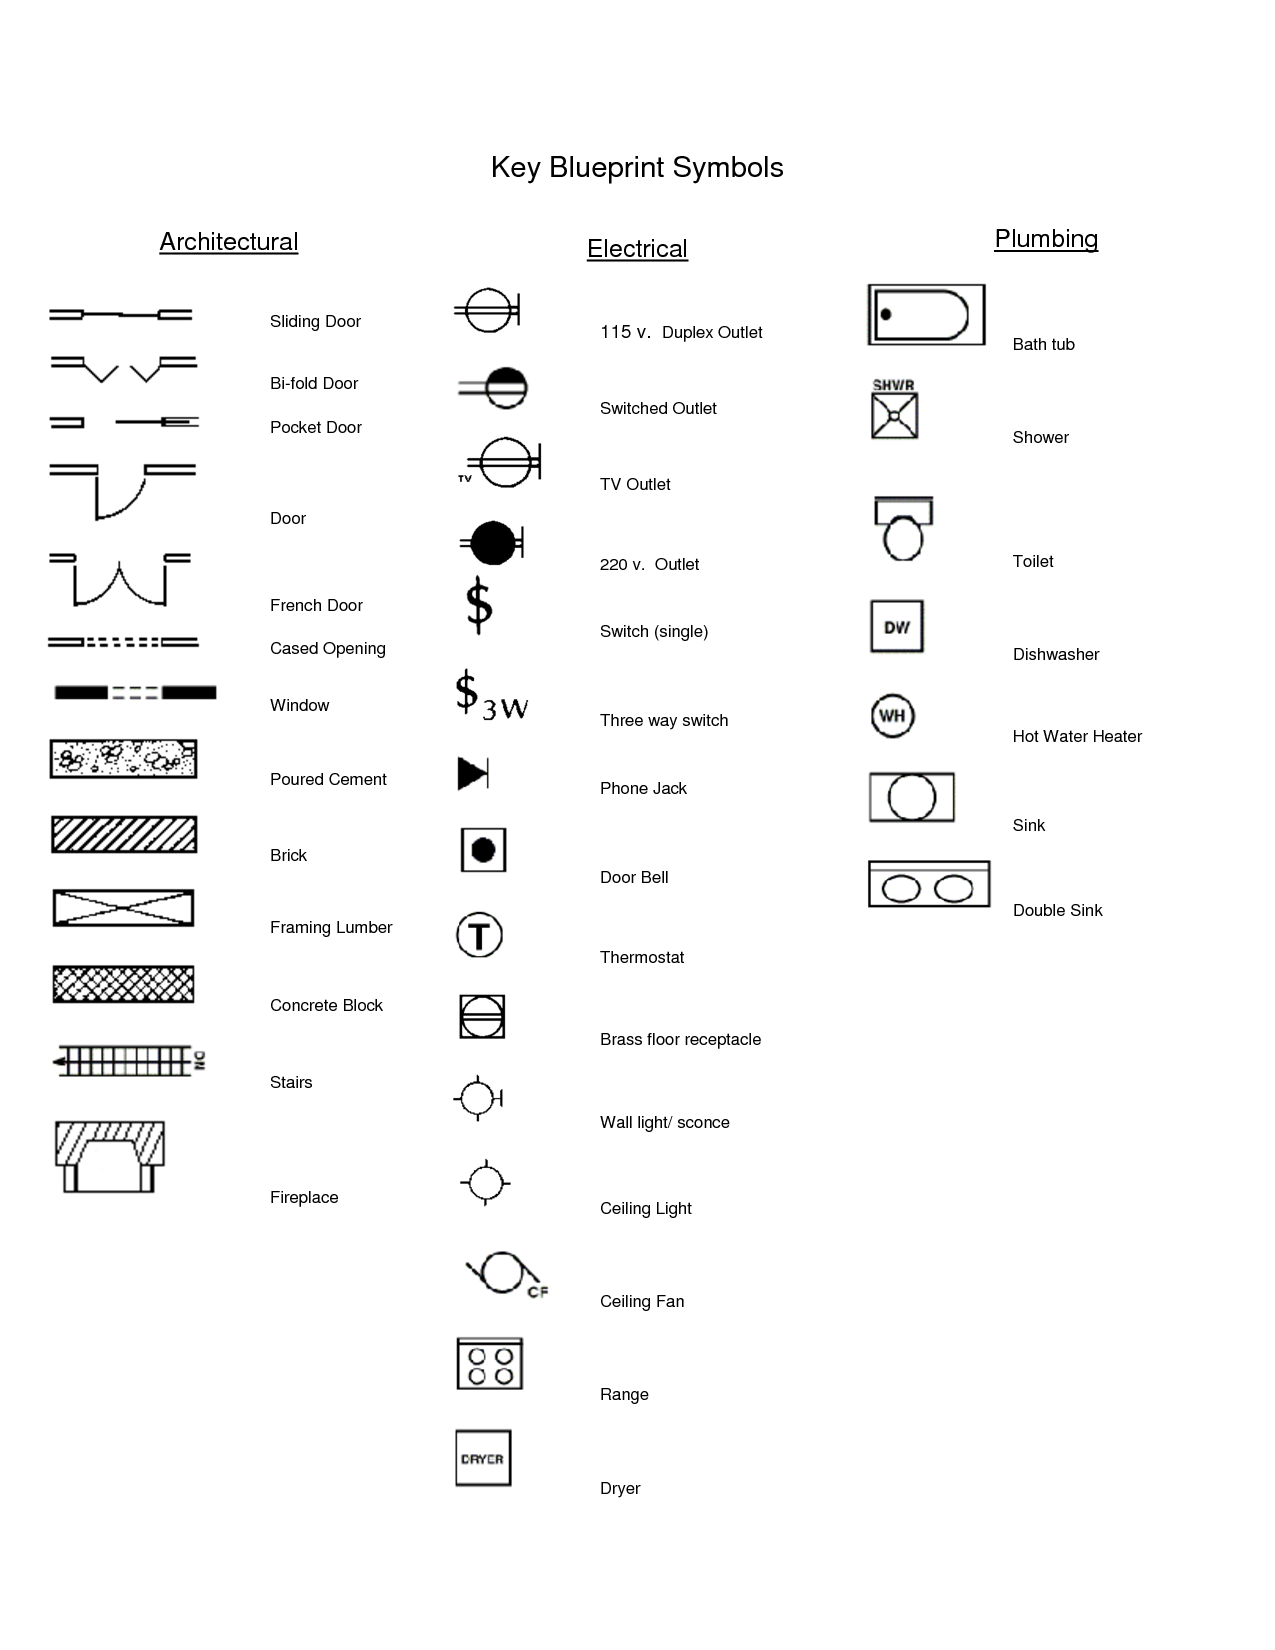 Electrical outlet symbols blueprints brick pinned by modlar electrical outlet symbols blueprints brick pinned by modlar biocorpaavc Choice Image